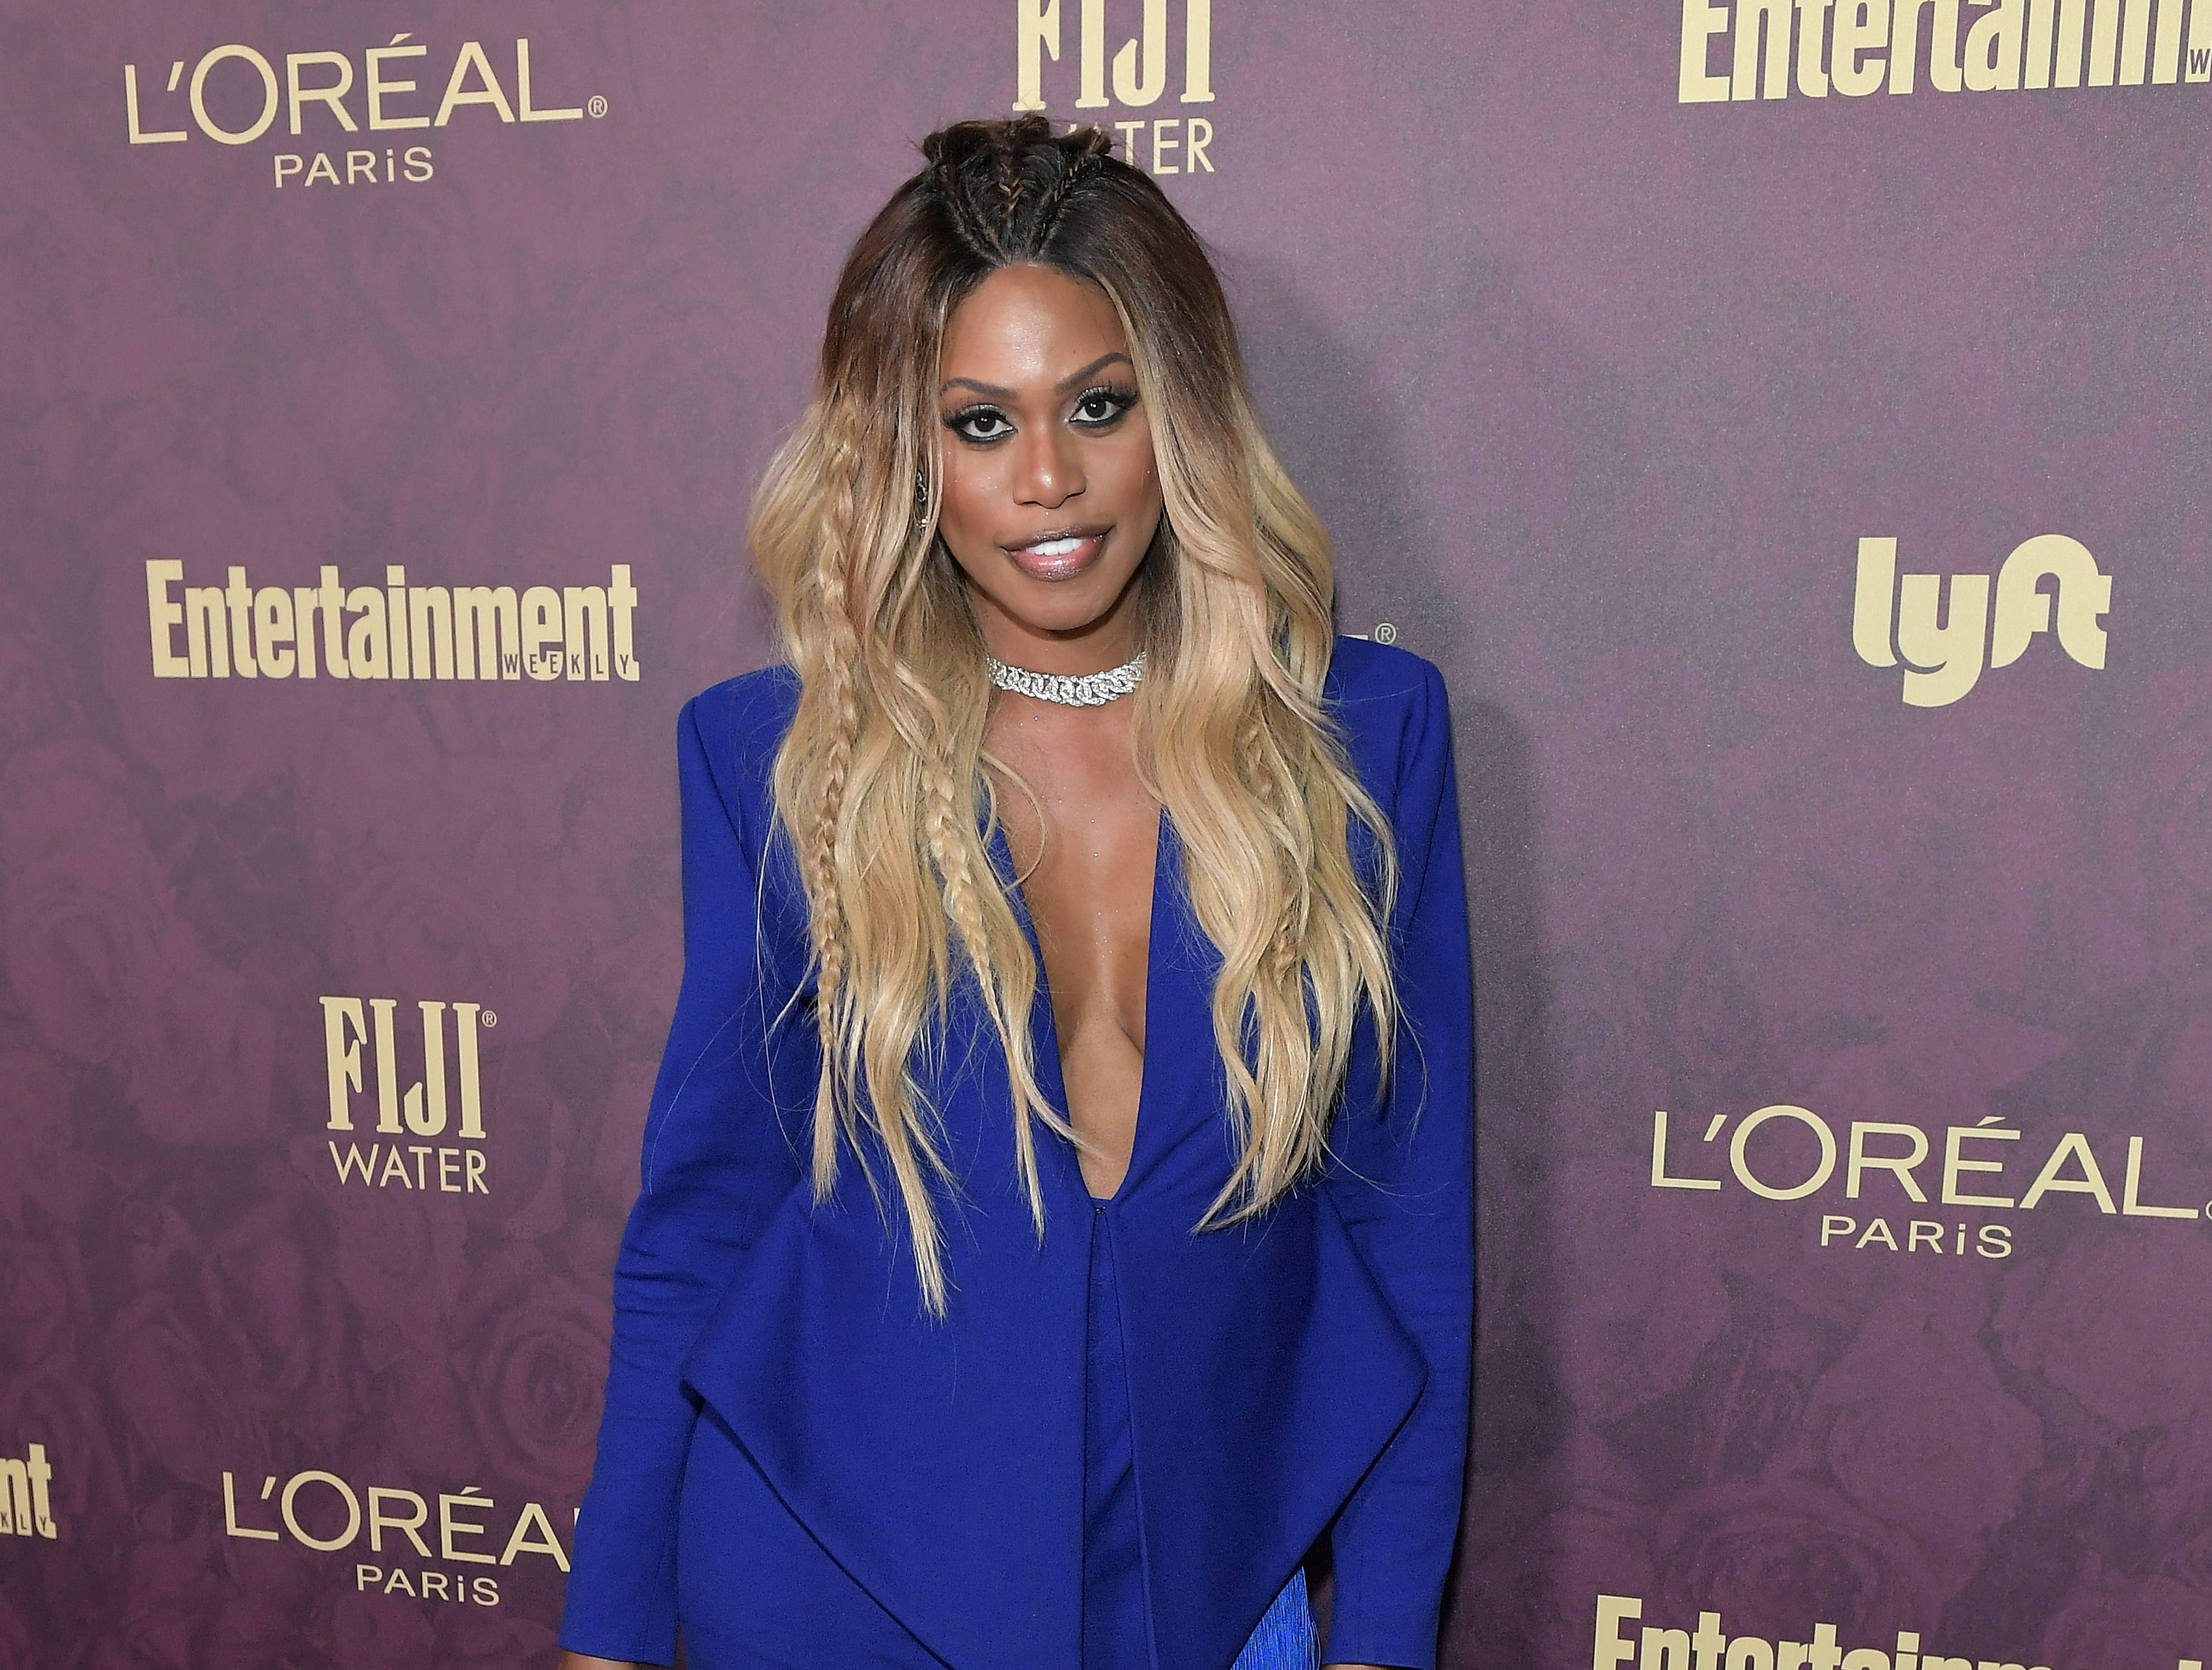 LOS ANGELES, CA - SEPTEMBER 15:  Laverne Cox attends the 2018 Pre-Emmy Party hosted by Entertainment Weekly and L'Oreal Paris at Sunset Tower on September 15, 2018 in Los Angeles, California.  (Photo by Neilson Barnard/Getty Images for Entertainment Weekly) ORG XMIT: 775214113 ORIG FILE ID: 1033990552